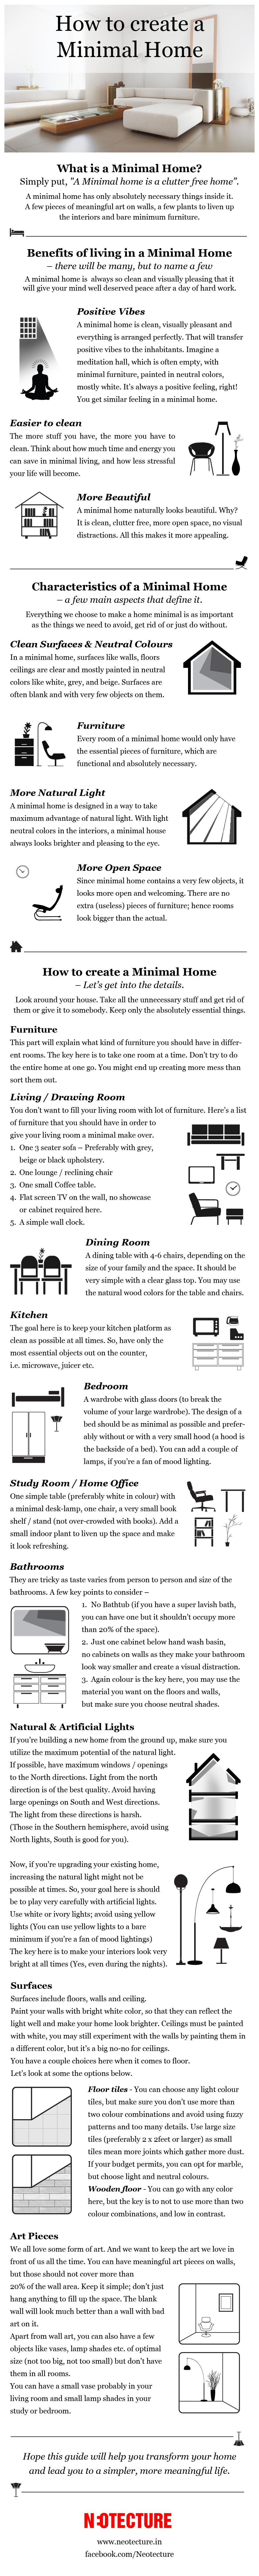 Create a Minimal Home Infographic